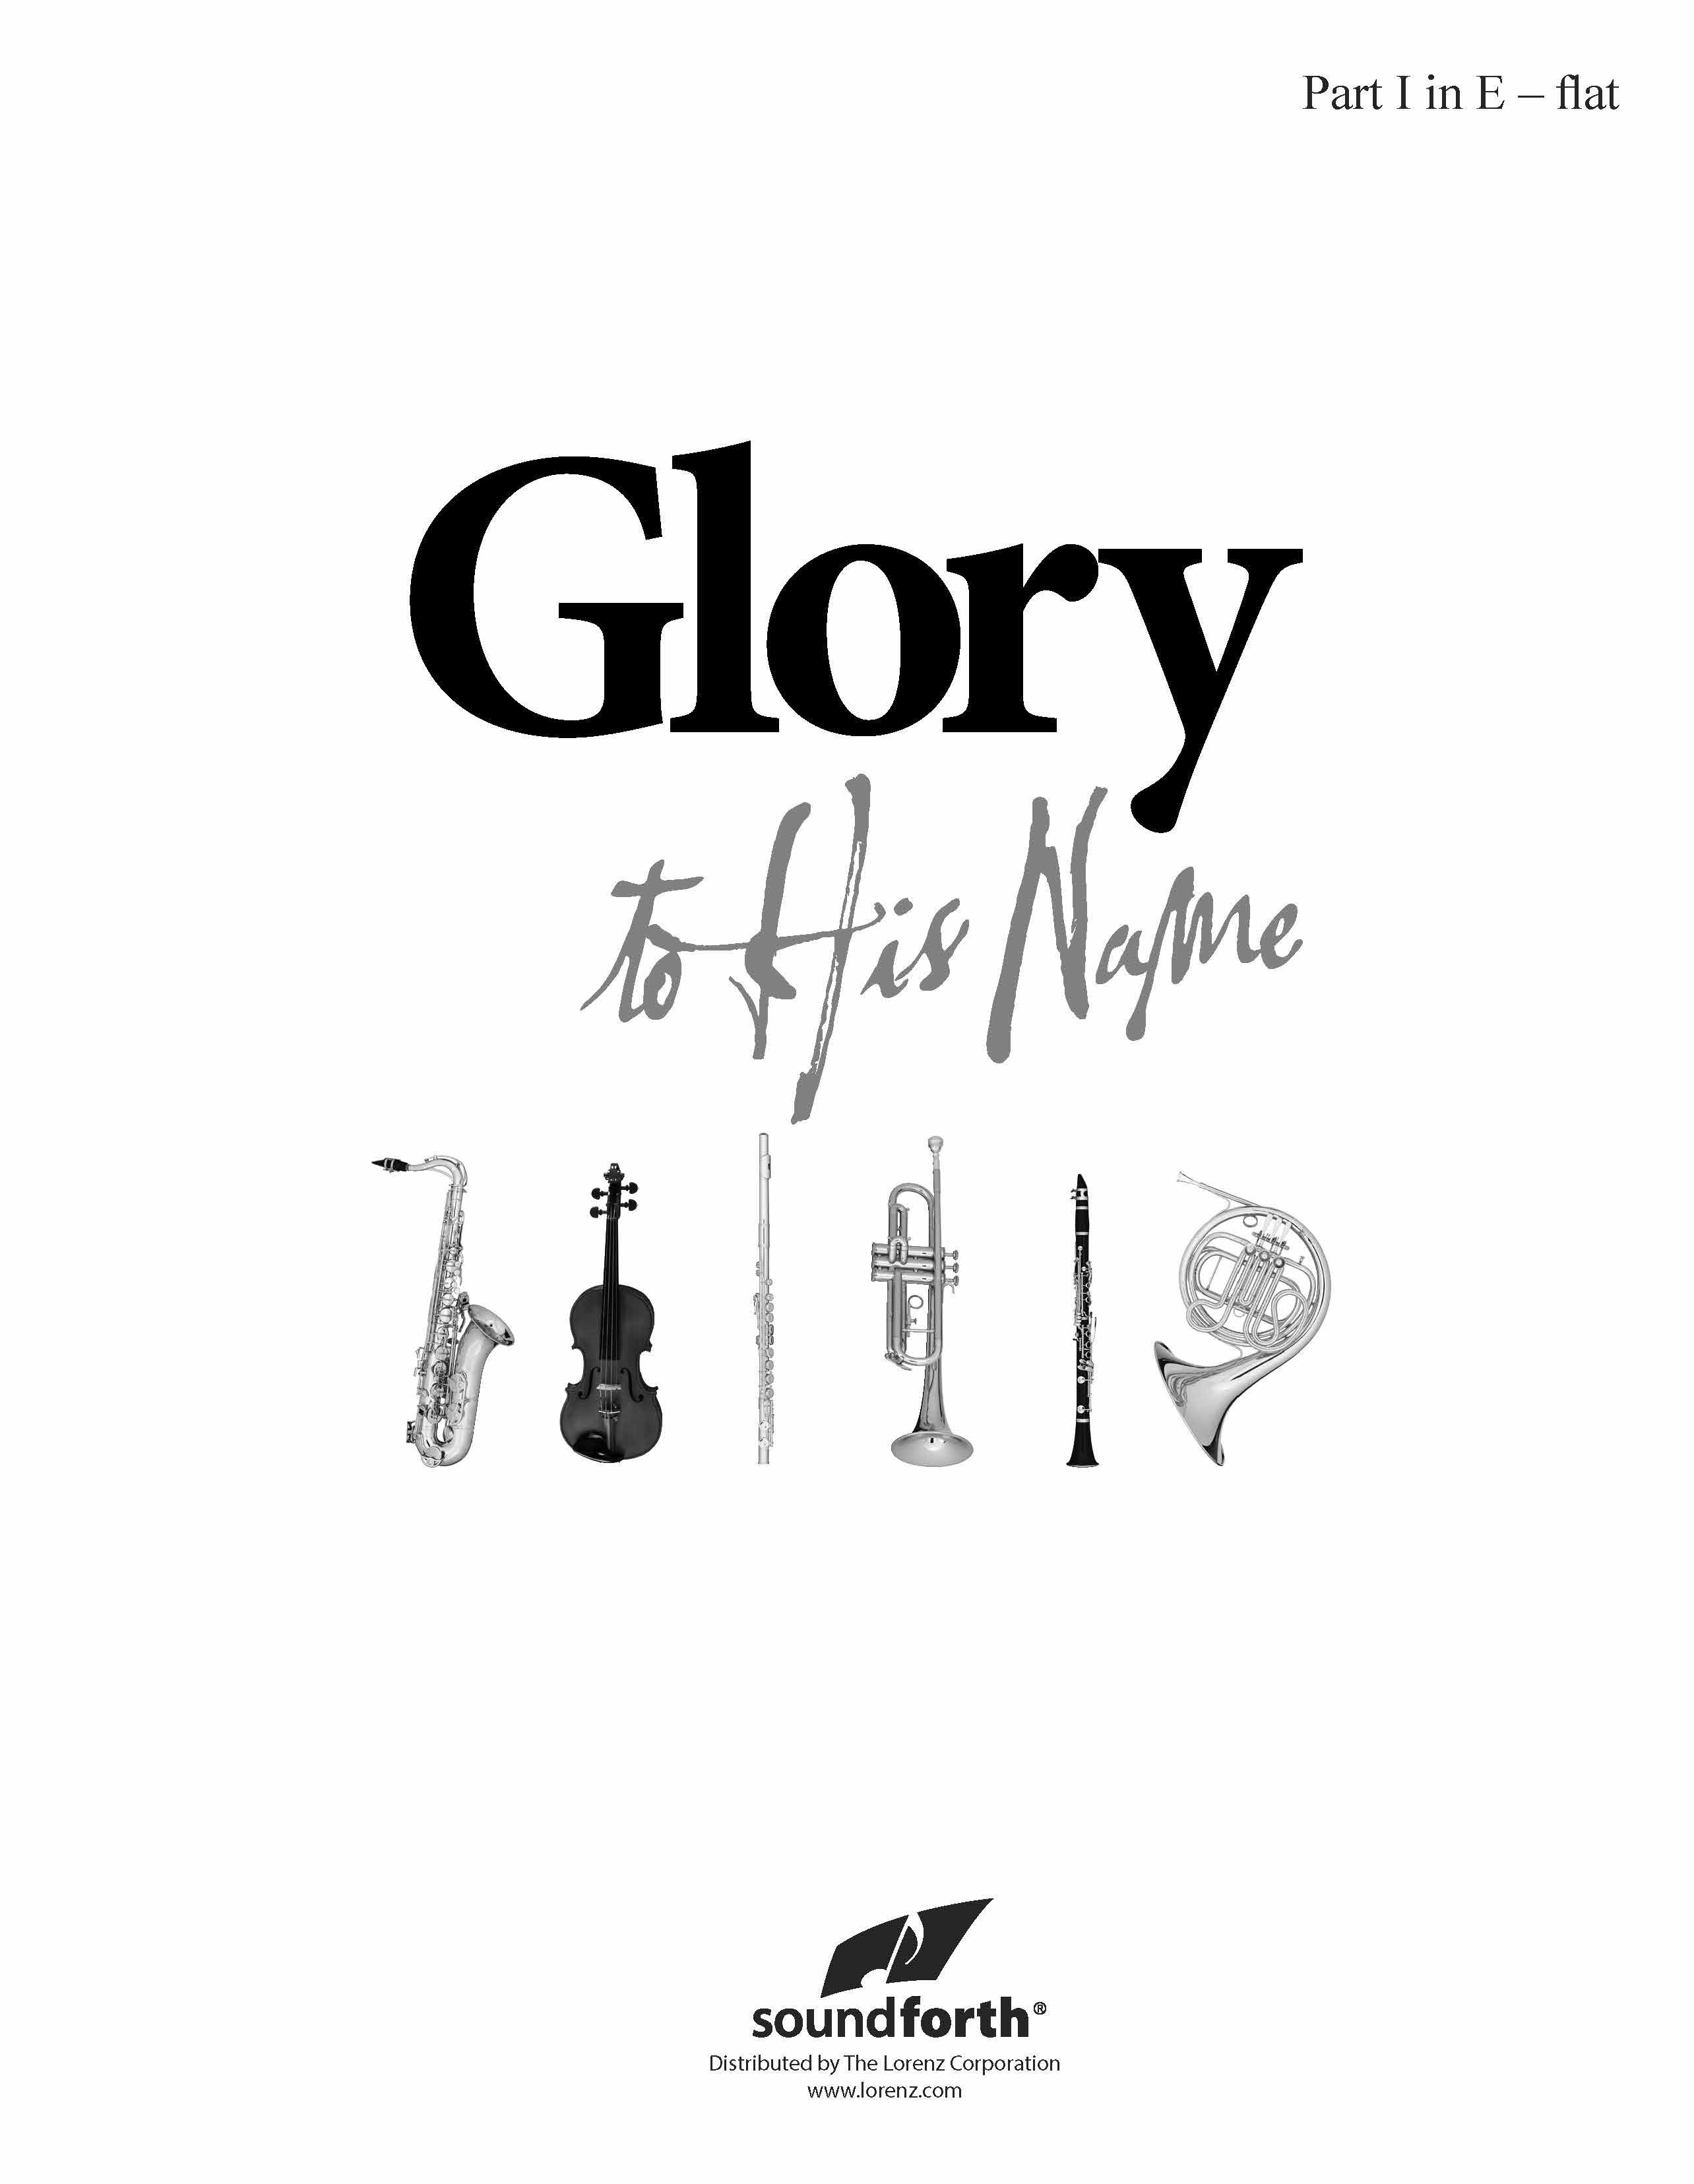 Glory to His Name - Part 1 in E-flat